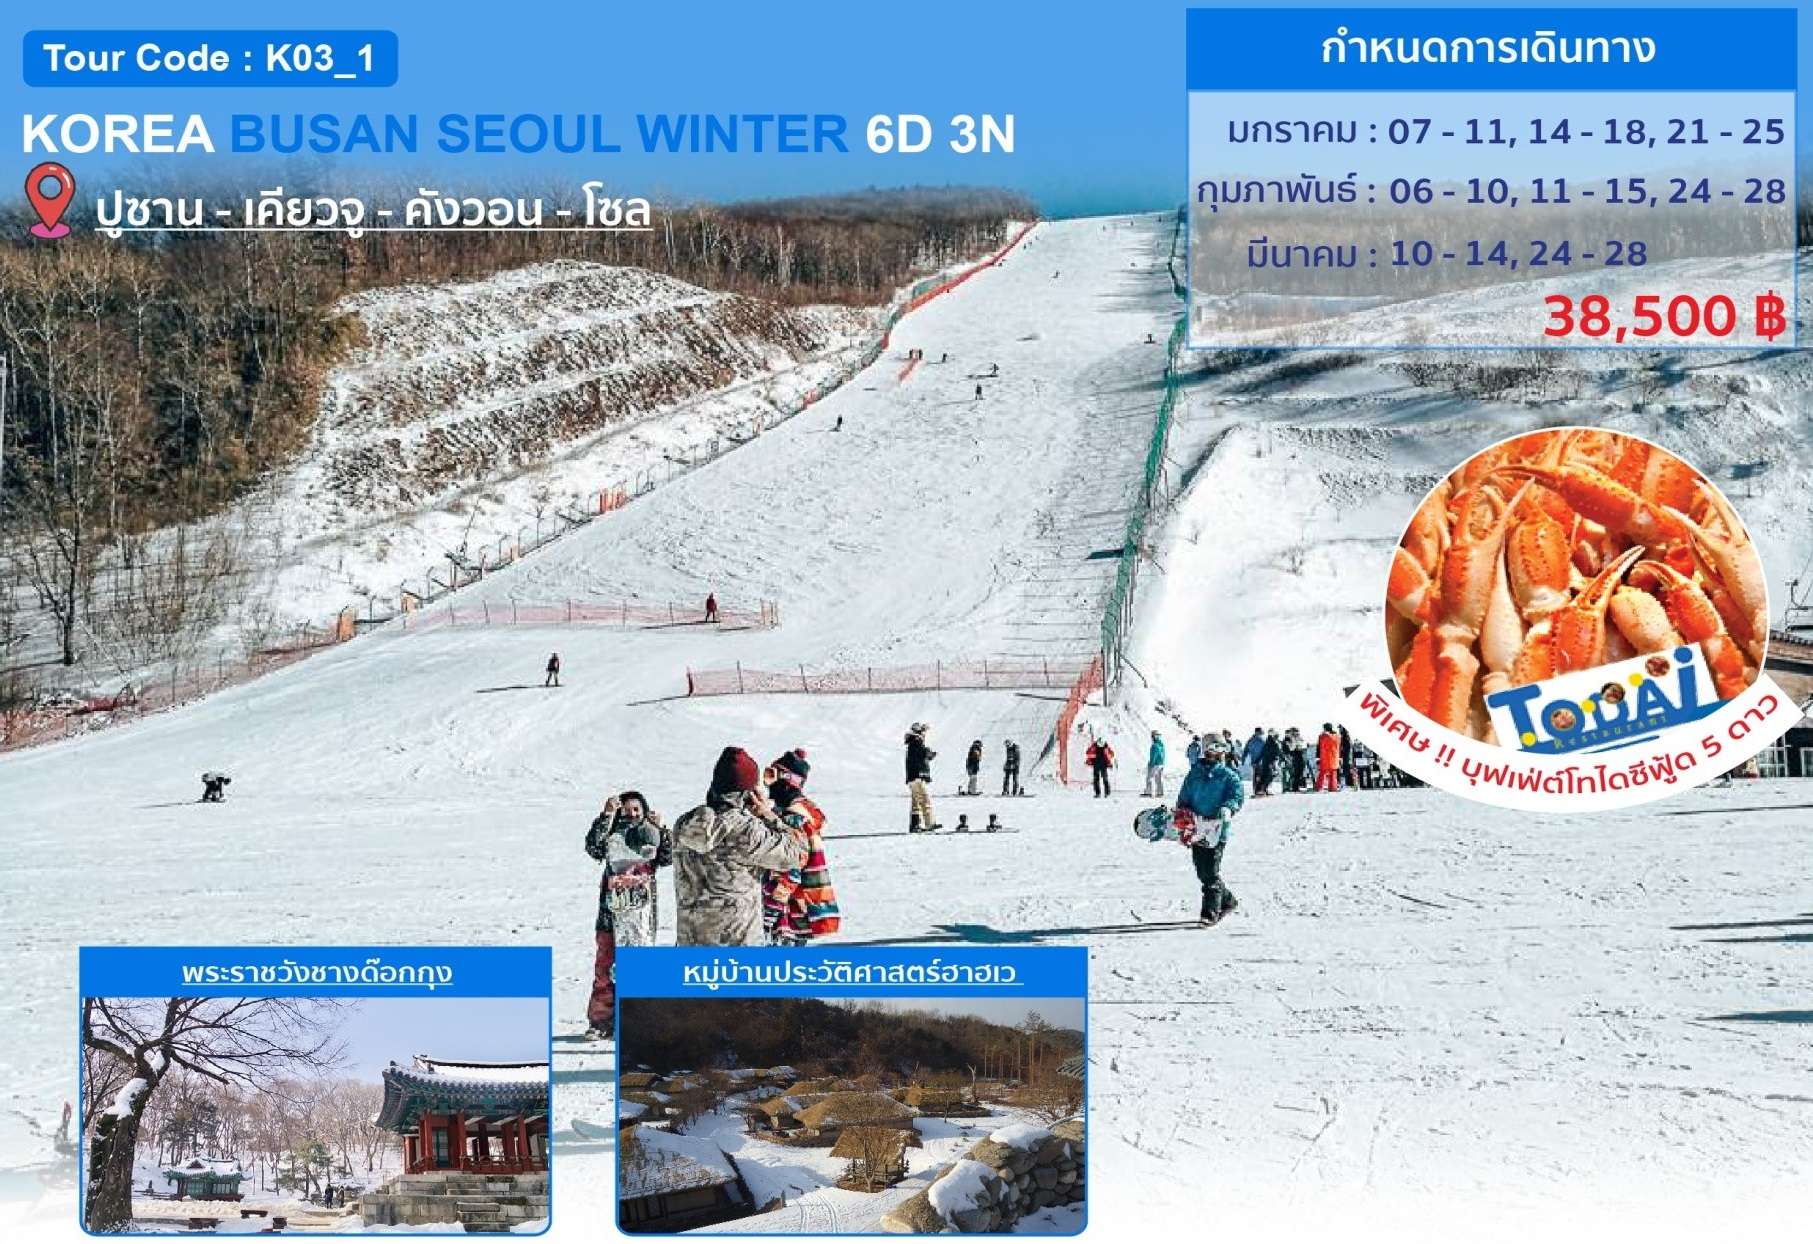 ทัวร์เกาหลี-KOREA-BUSAN-SEOUL-WINTER-5D-3N-(TG)(FEB-MAR20)-(K03_1)